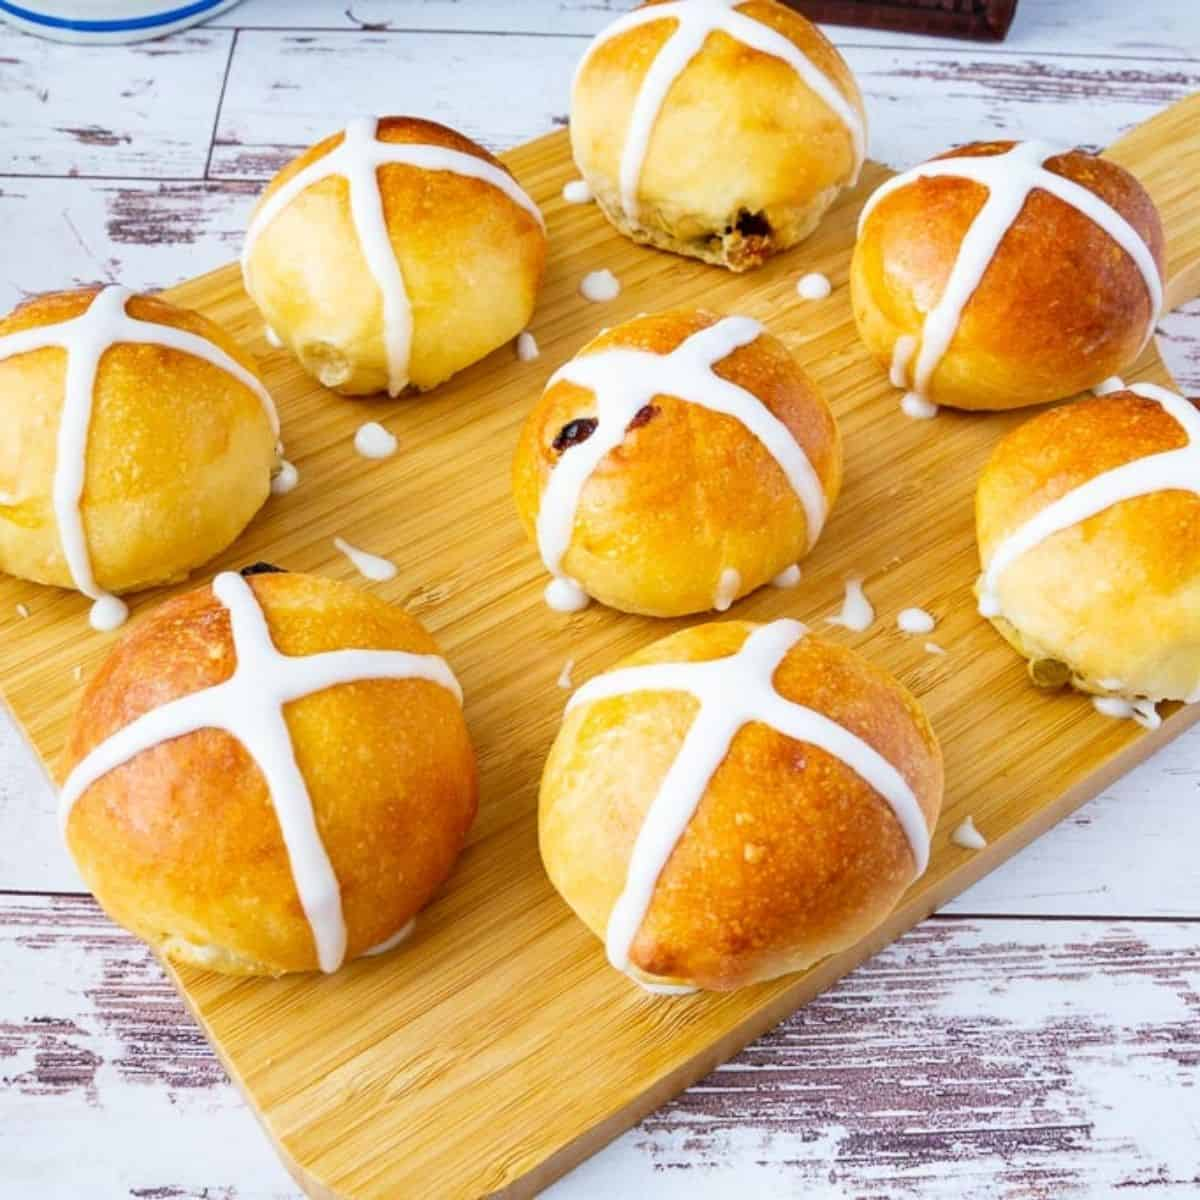 Hot cross buns on a wooden board.